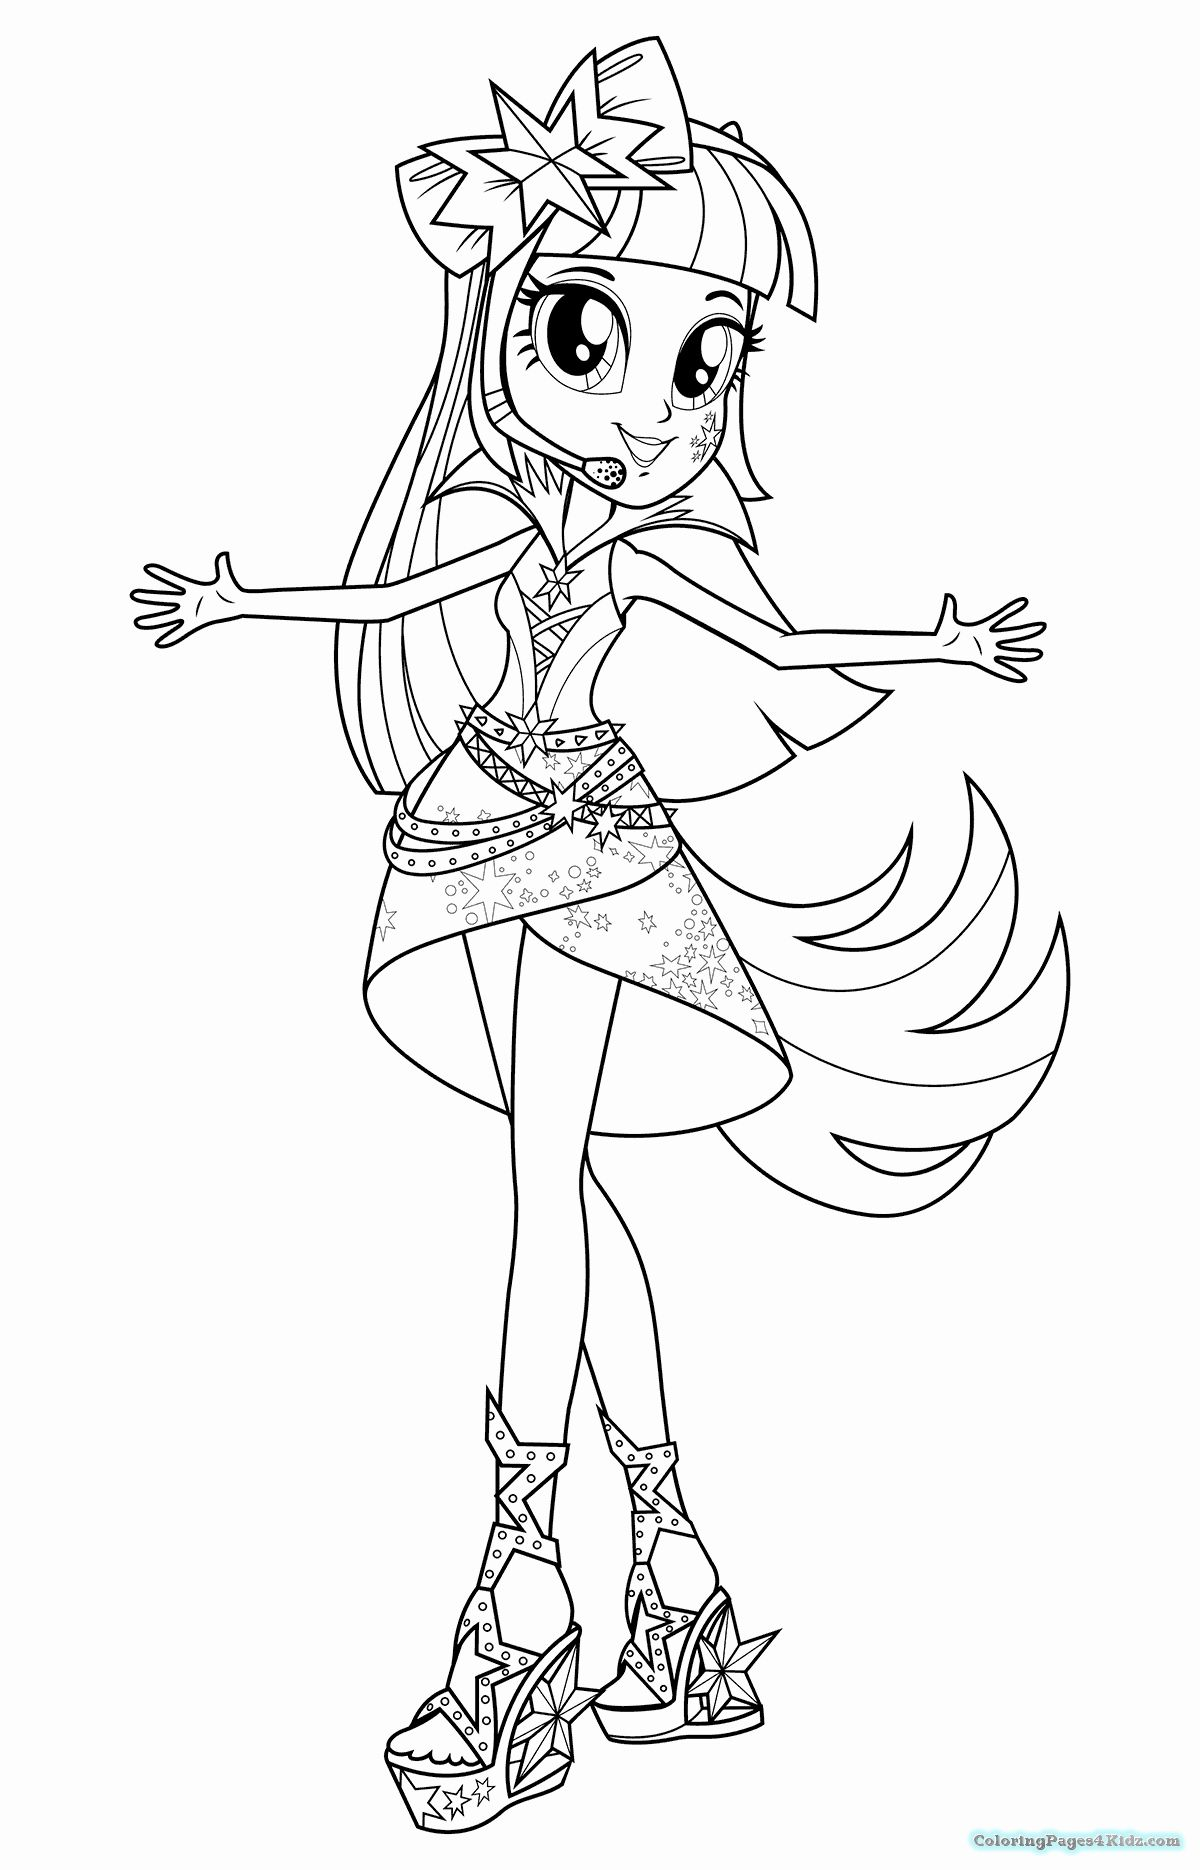 My Little Pony Equestria Girls Coloring Page Inspirational My Little Pony Equestria Gir Coloring Pages For Girls My Little Pony Coloring My Little Pony Unicorn